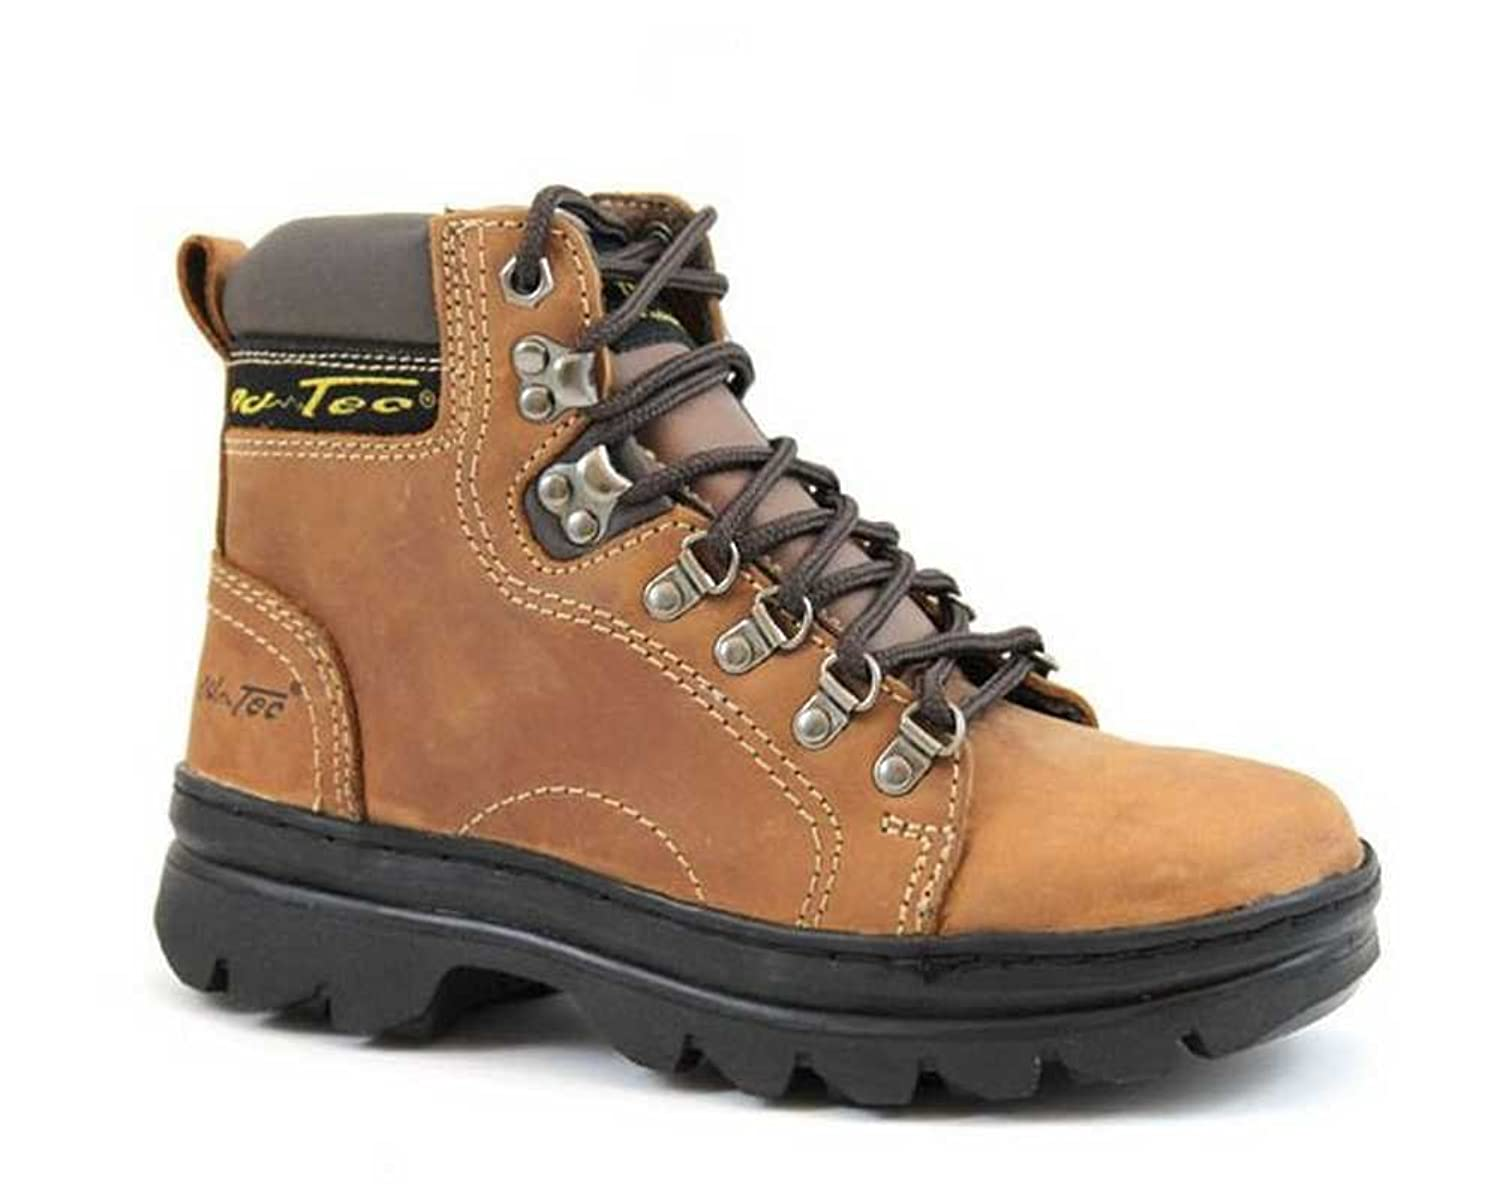 Womens Soft Leather Walking Boots 115